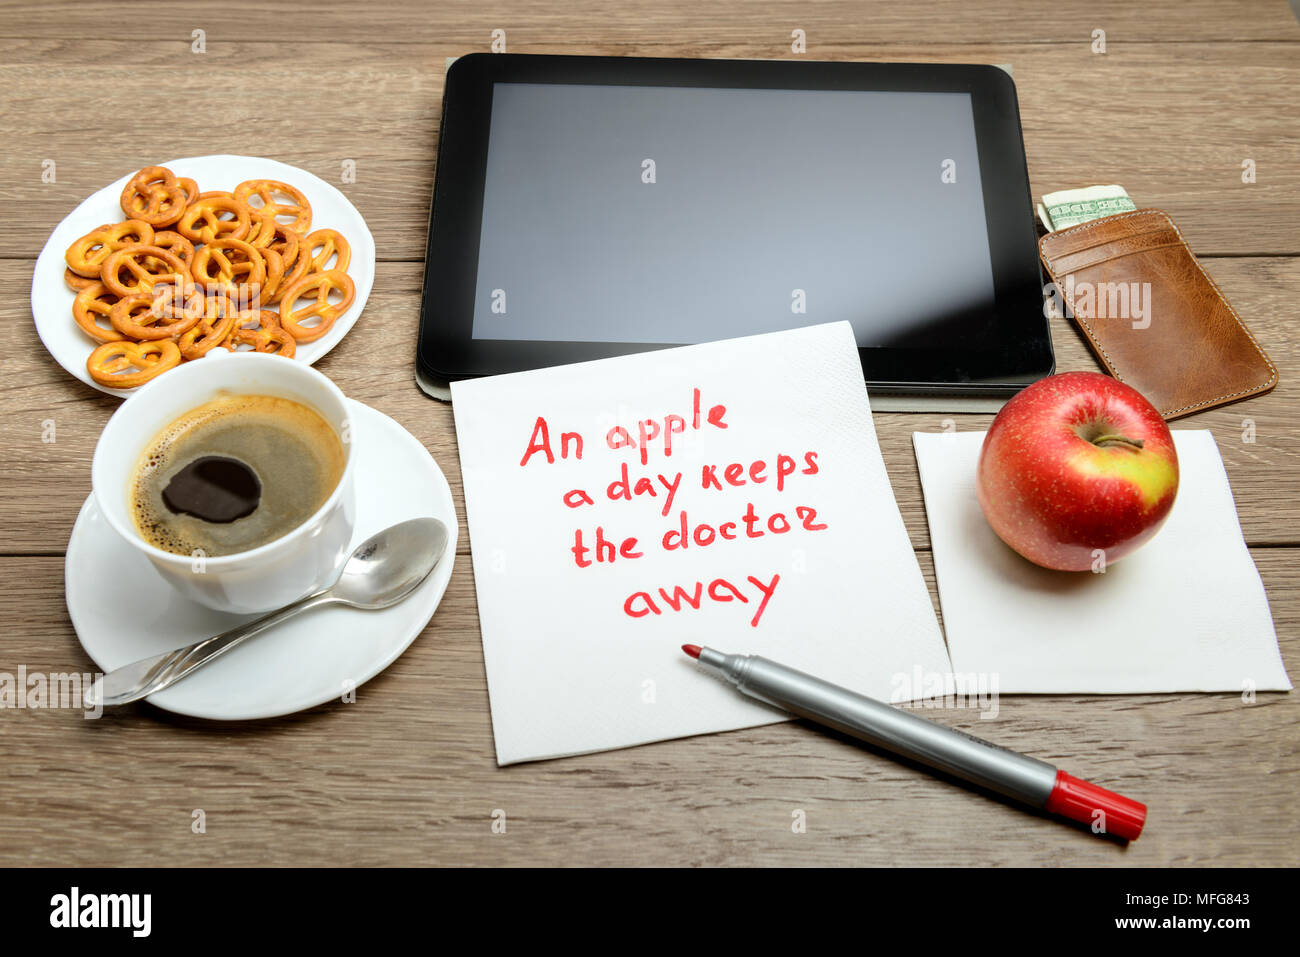 napkin handwriting message proverb on wooden table with coffee, some food and tablet PC An apple a day keeps the doctor away - Stock Image